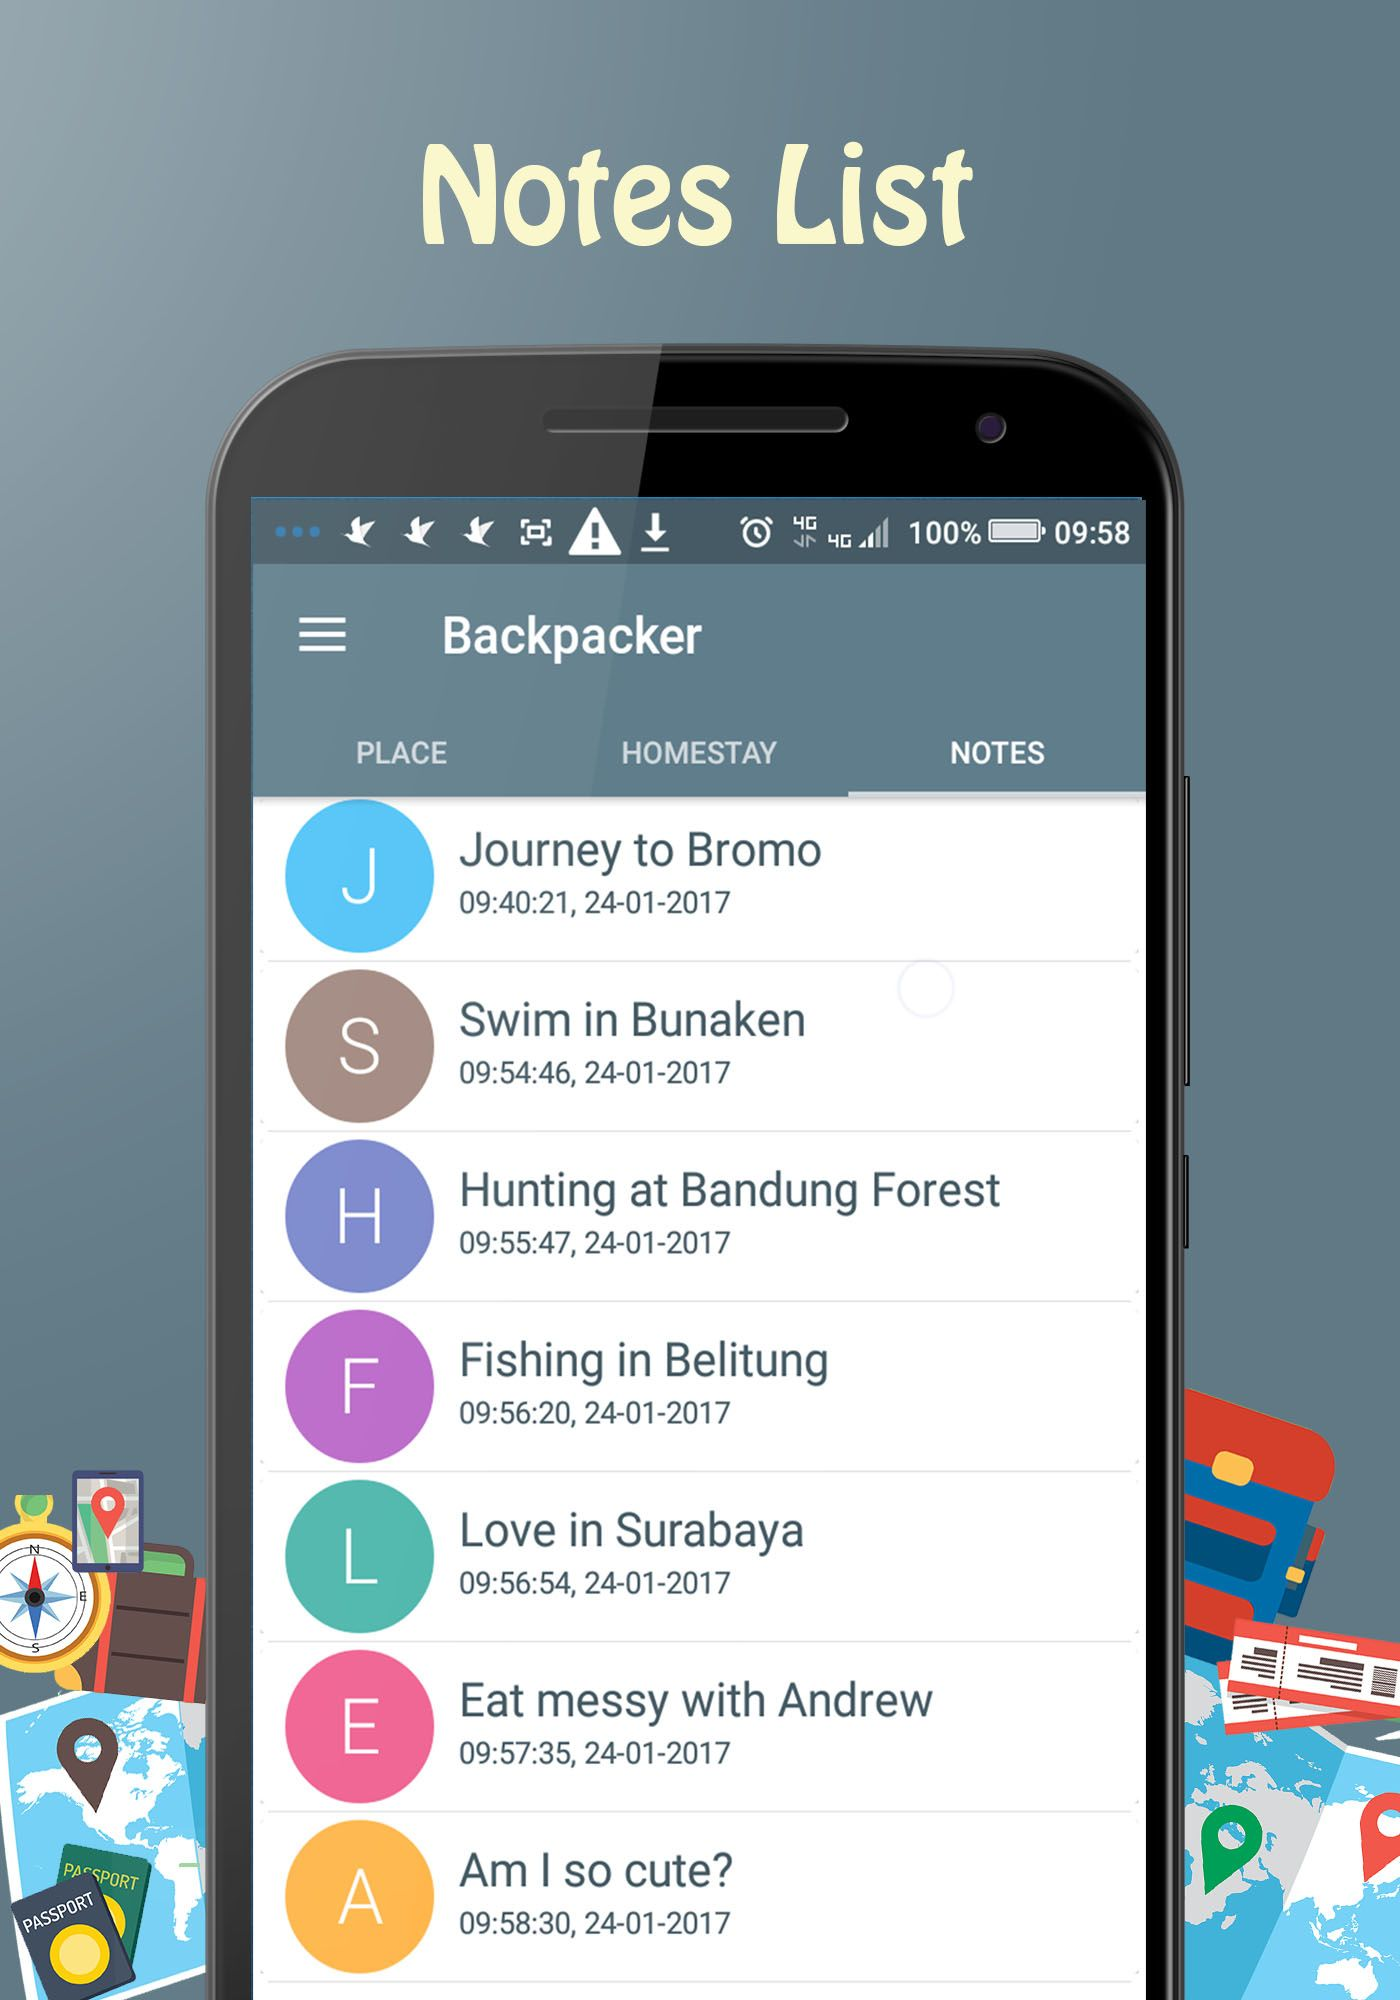 Backpacker - Android Travel App Screenshot 9